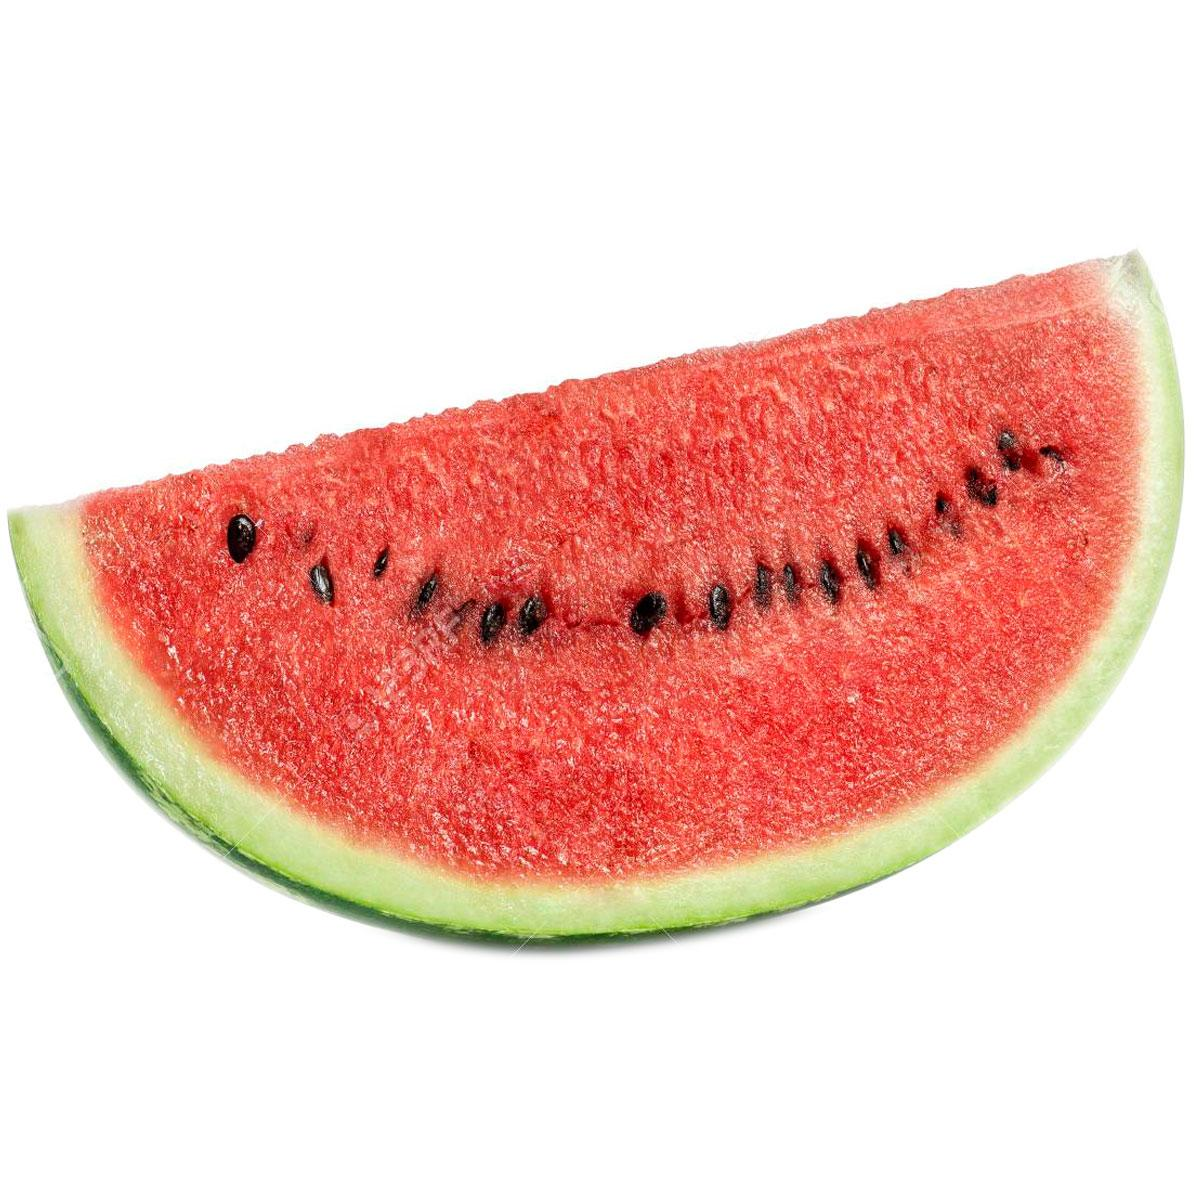 Watermelon (Quarter)